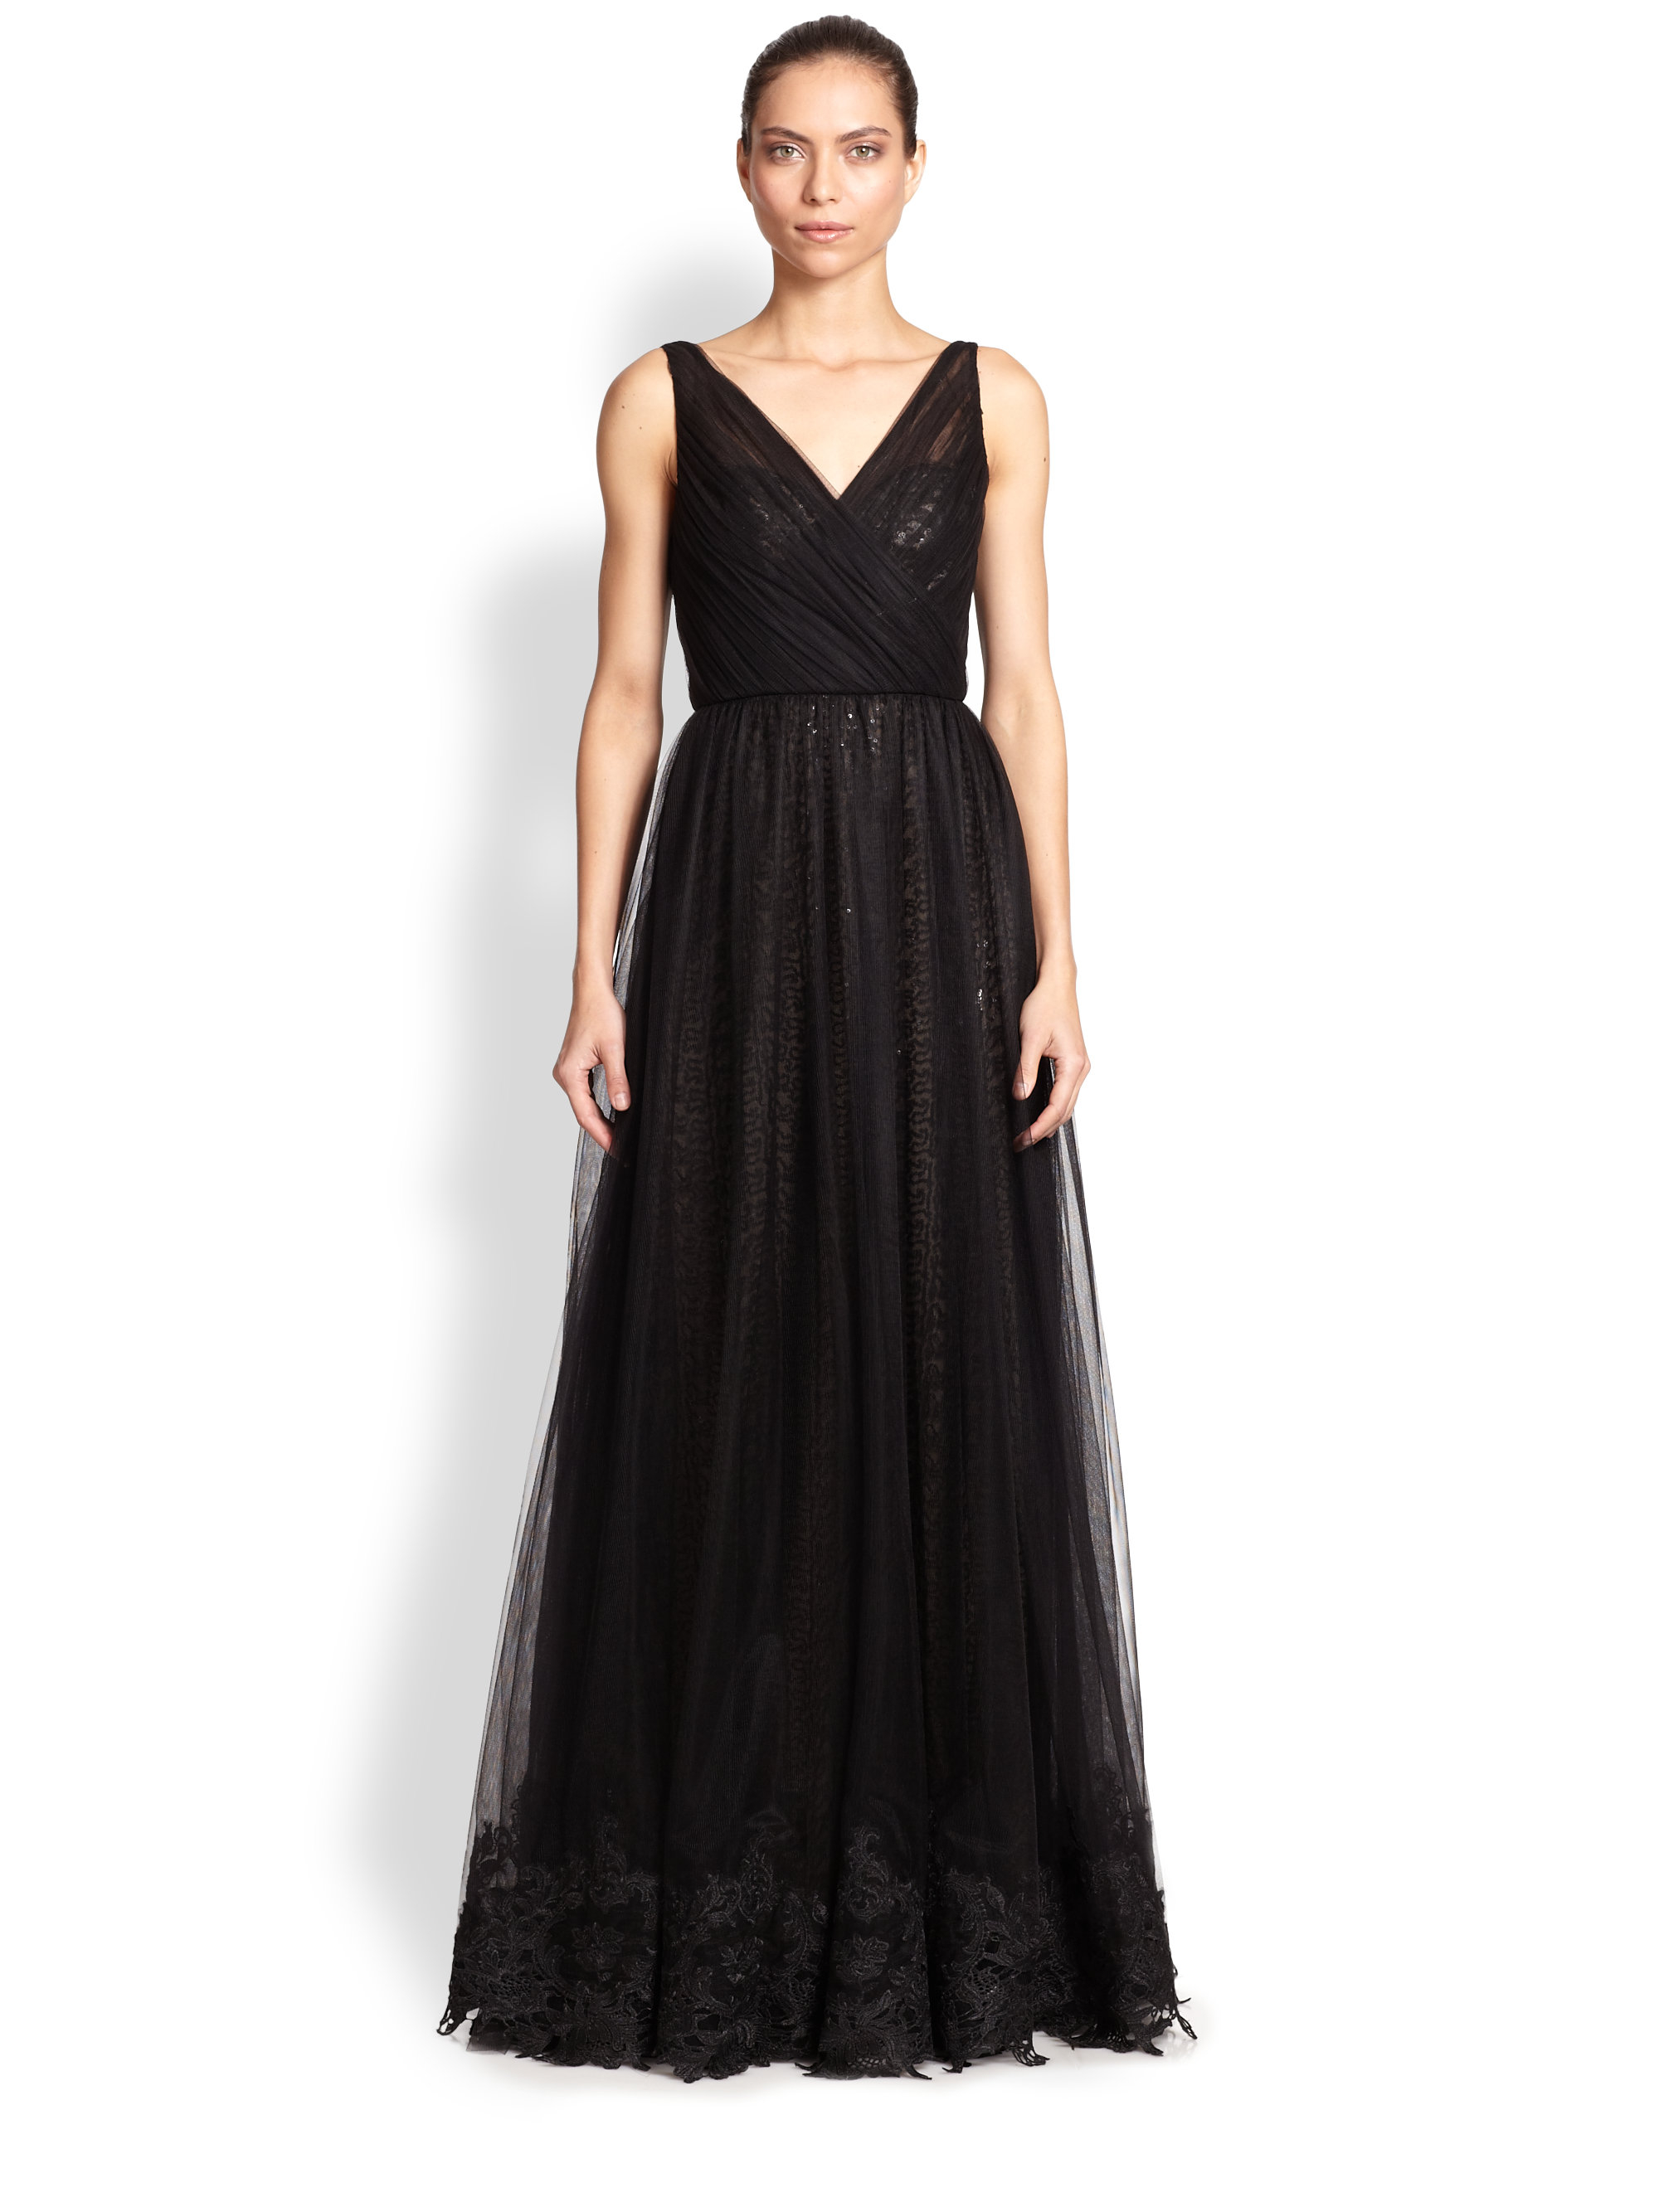 Black Evening Gowns Monique Lhuillier – fashion dresses